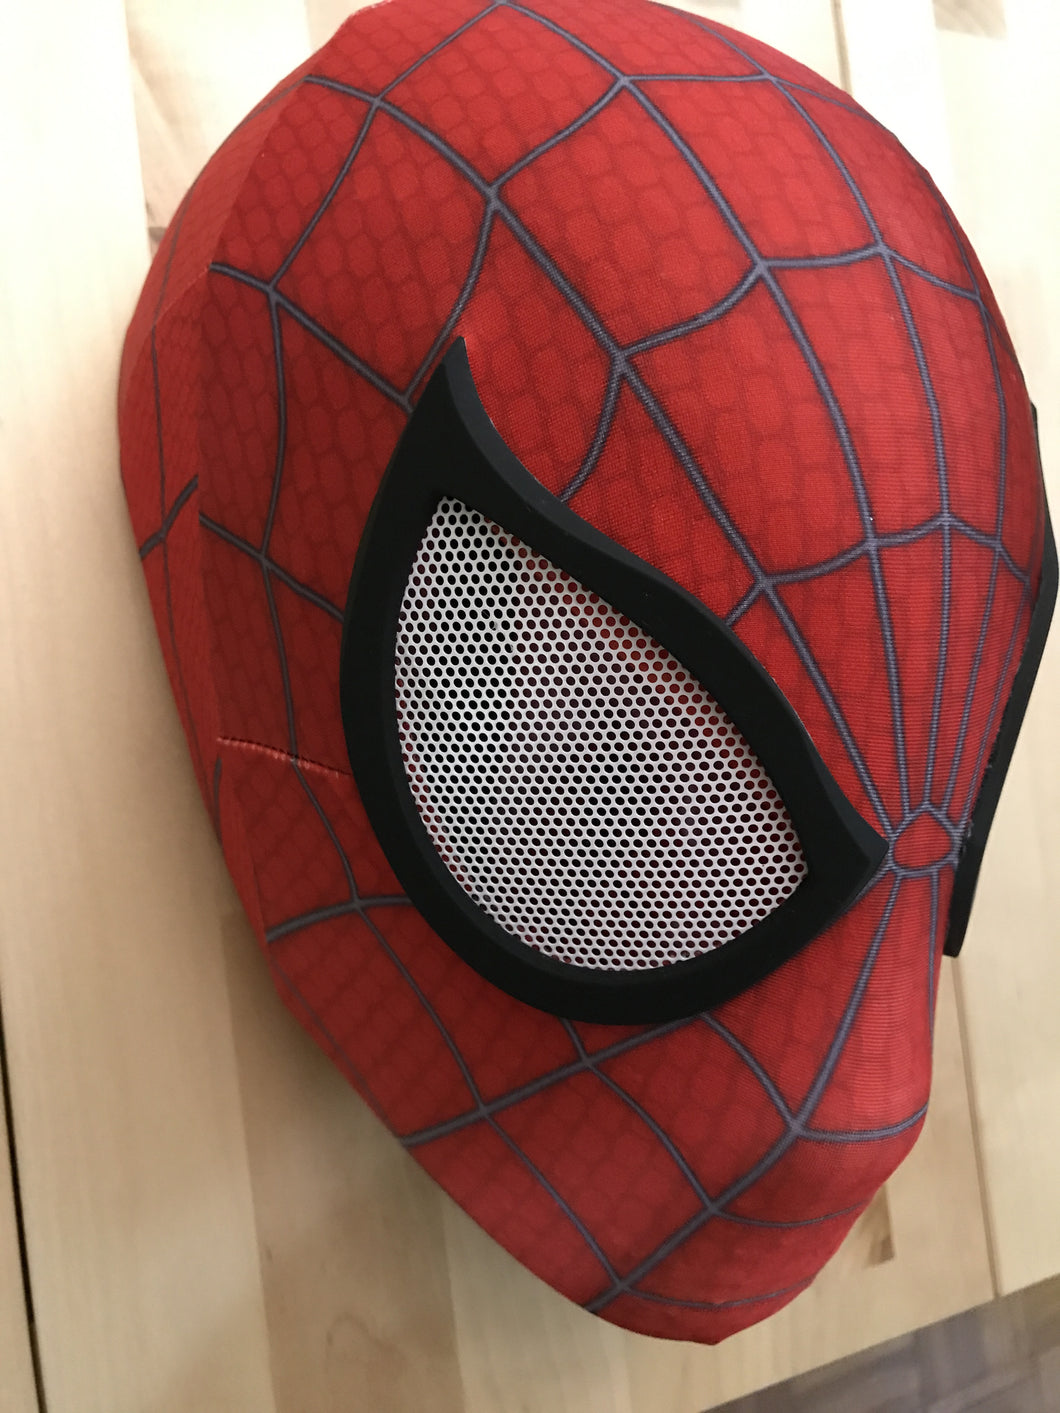 Uncategorized Spiderman Face Pictures spider man universal face shell aesthetic cosplay inc inc